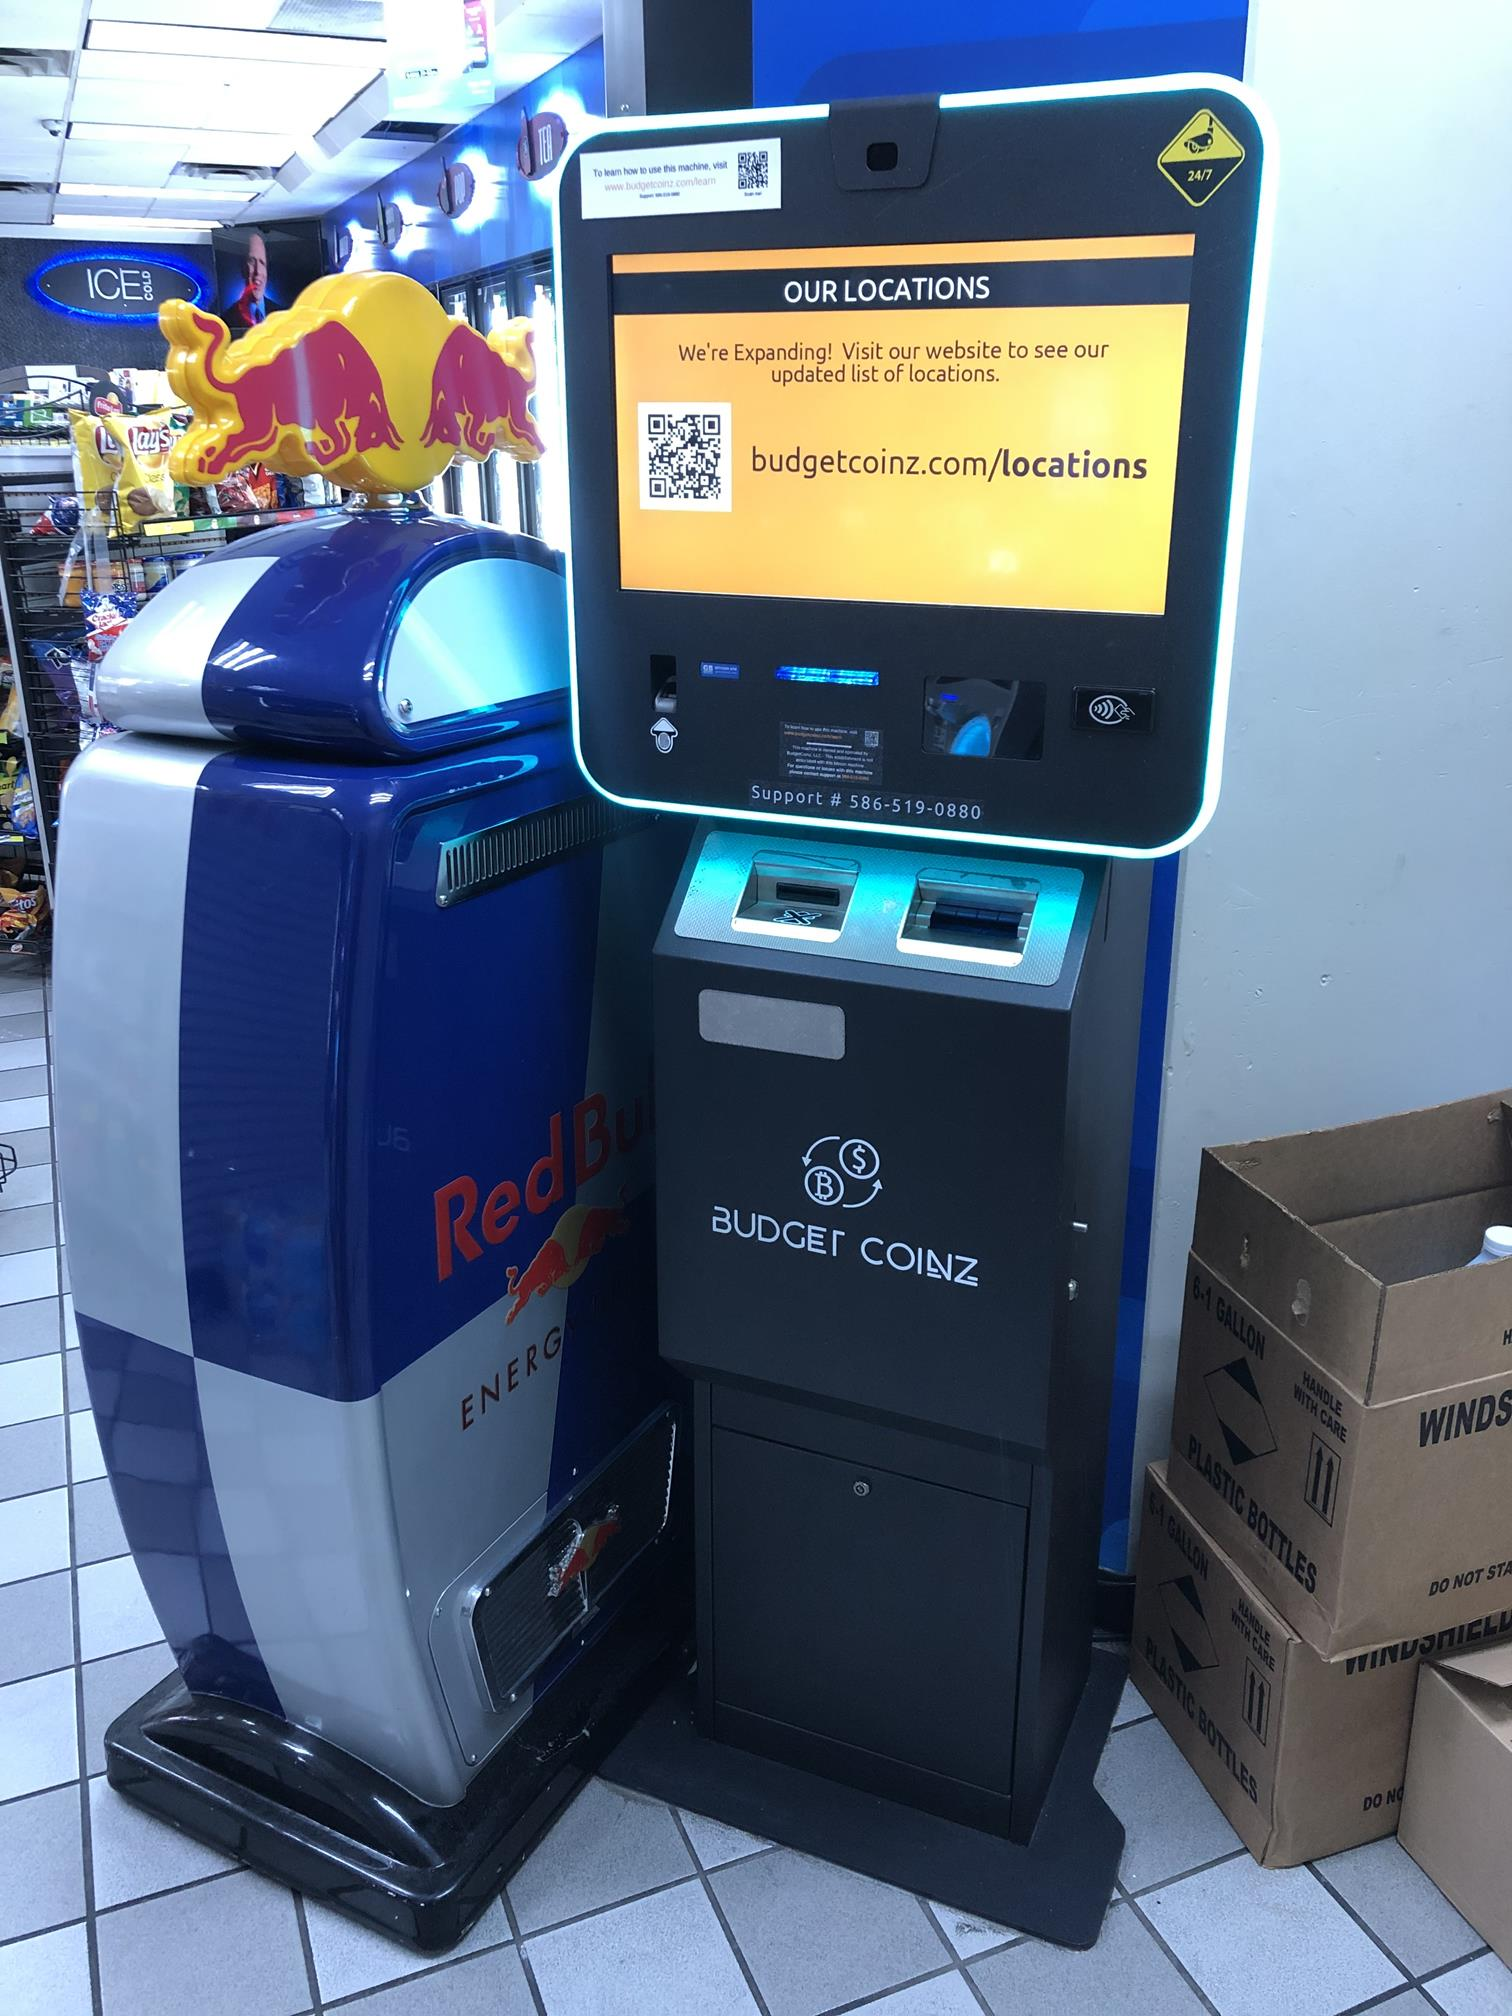 How to Buy Bitcoin with Cash Using a Bitcoin ATM - Real ...